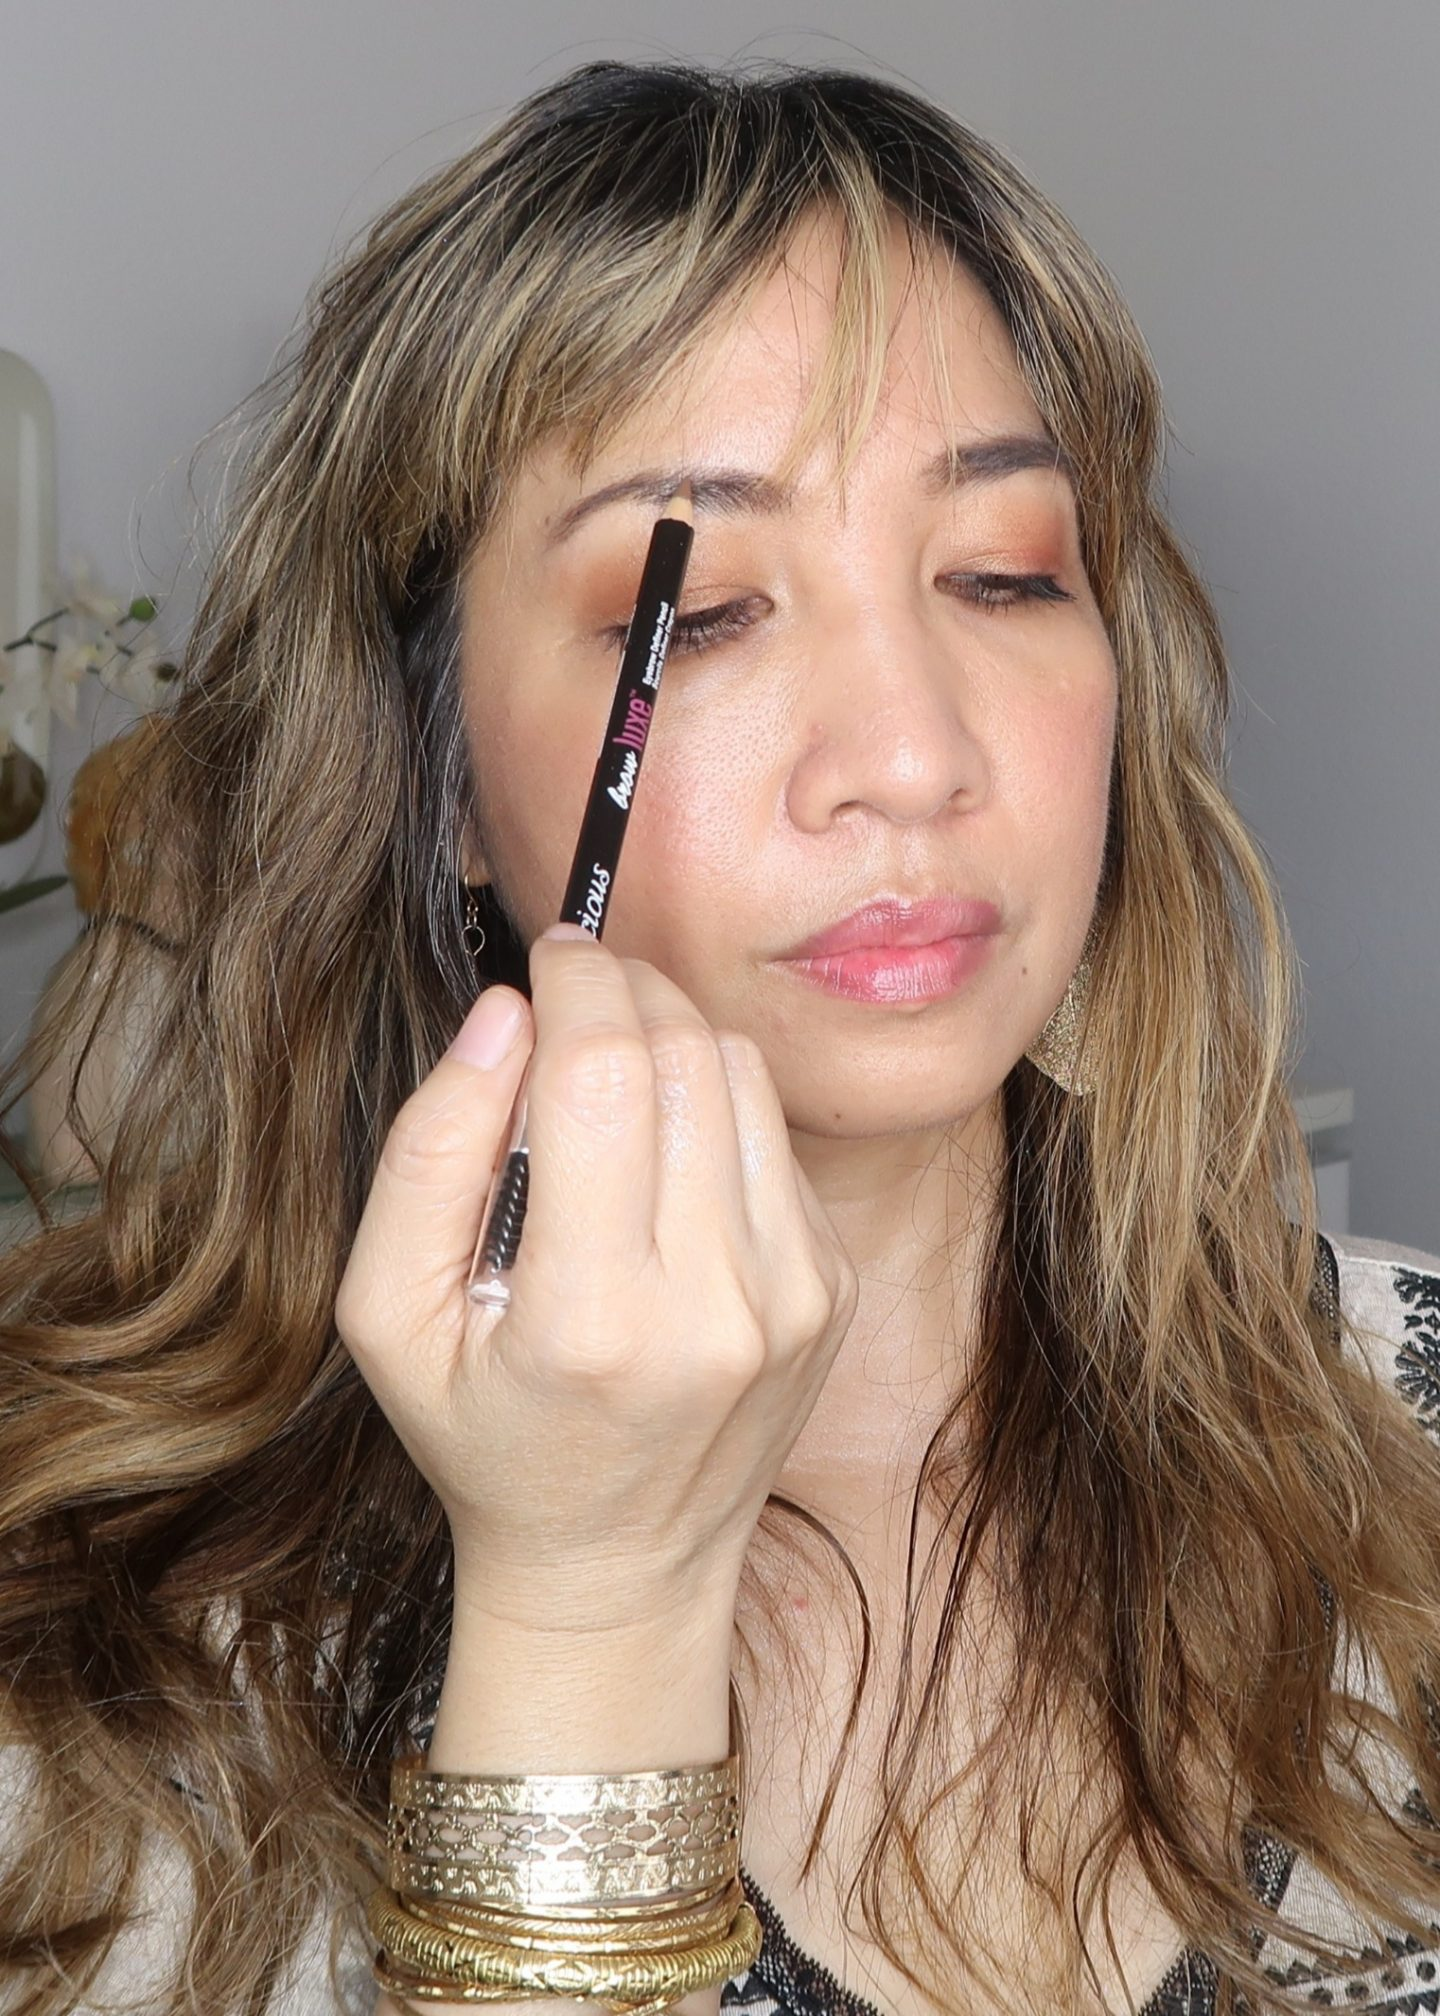 Hawaii Beauty Blogger Thefabzilla shares some glamorous vegan and cruelty-free makeups from Luscious Cosmetics